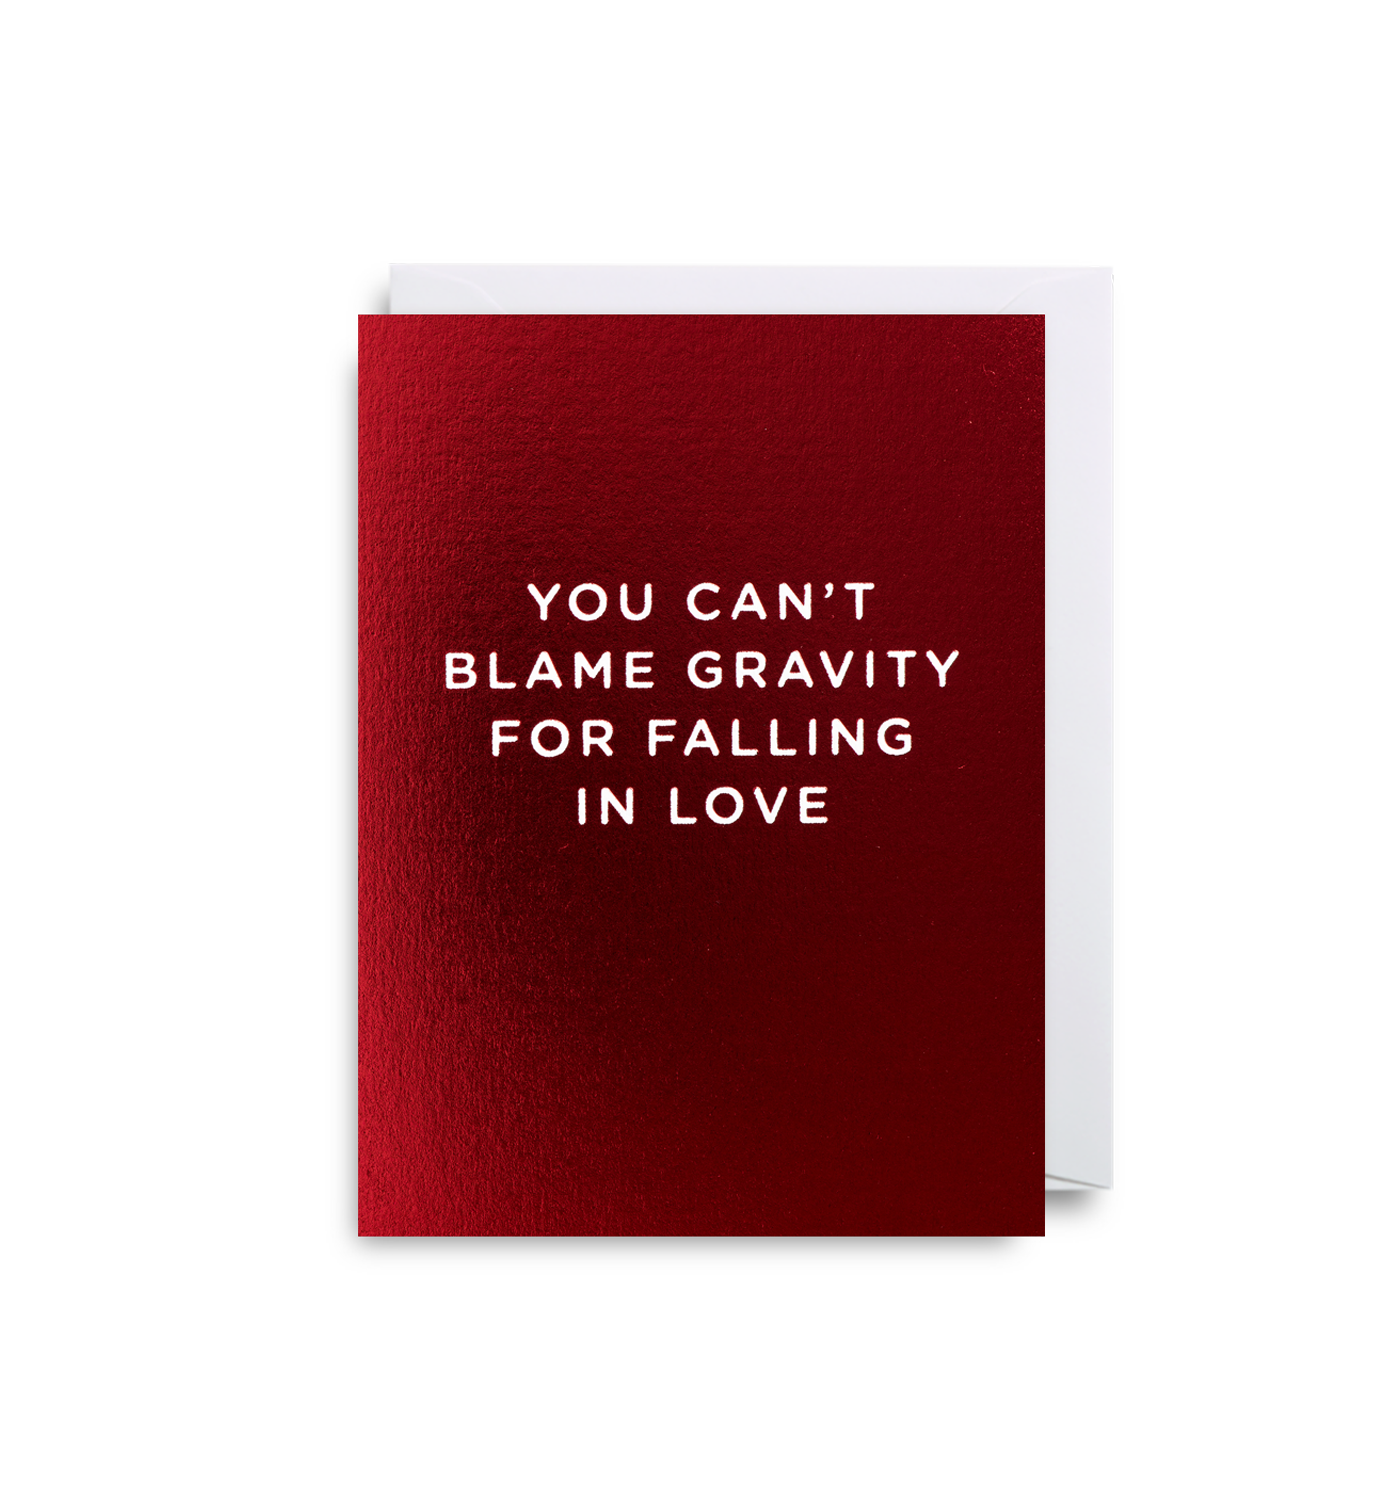 You Can't Blame Gravity For Falling In Love Mini Card - Lagom Design